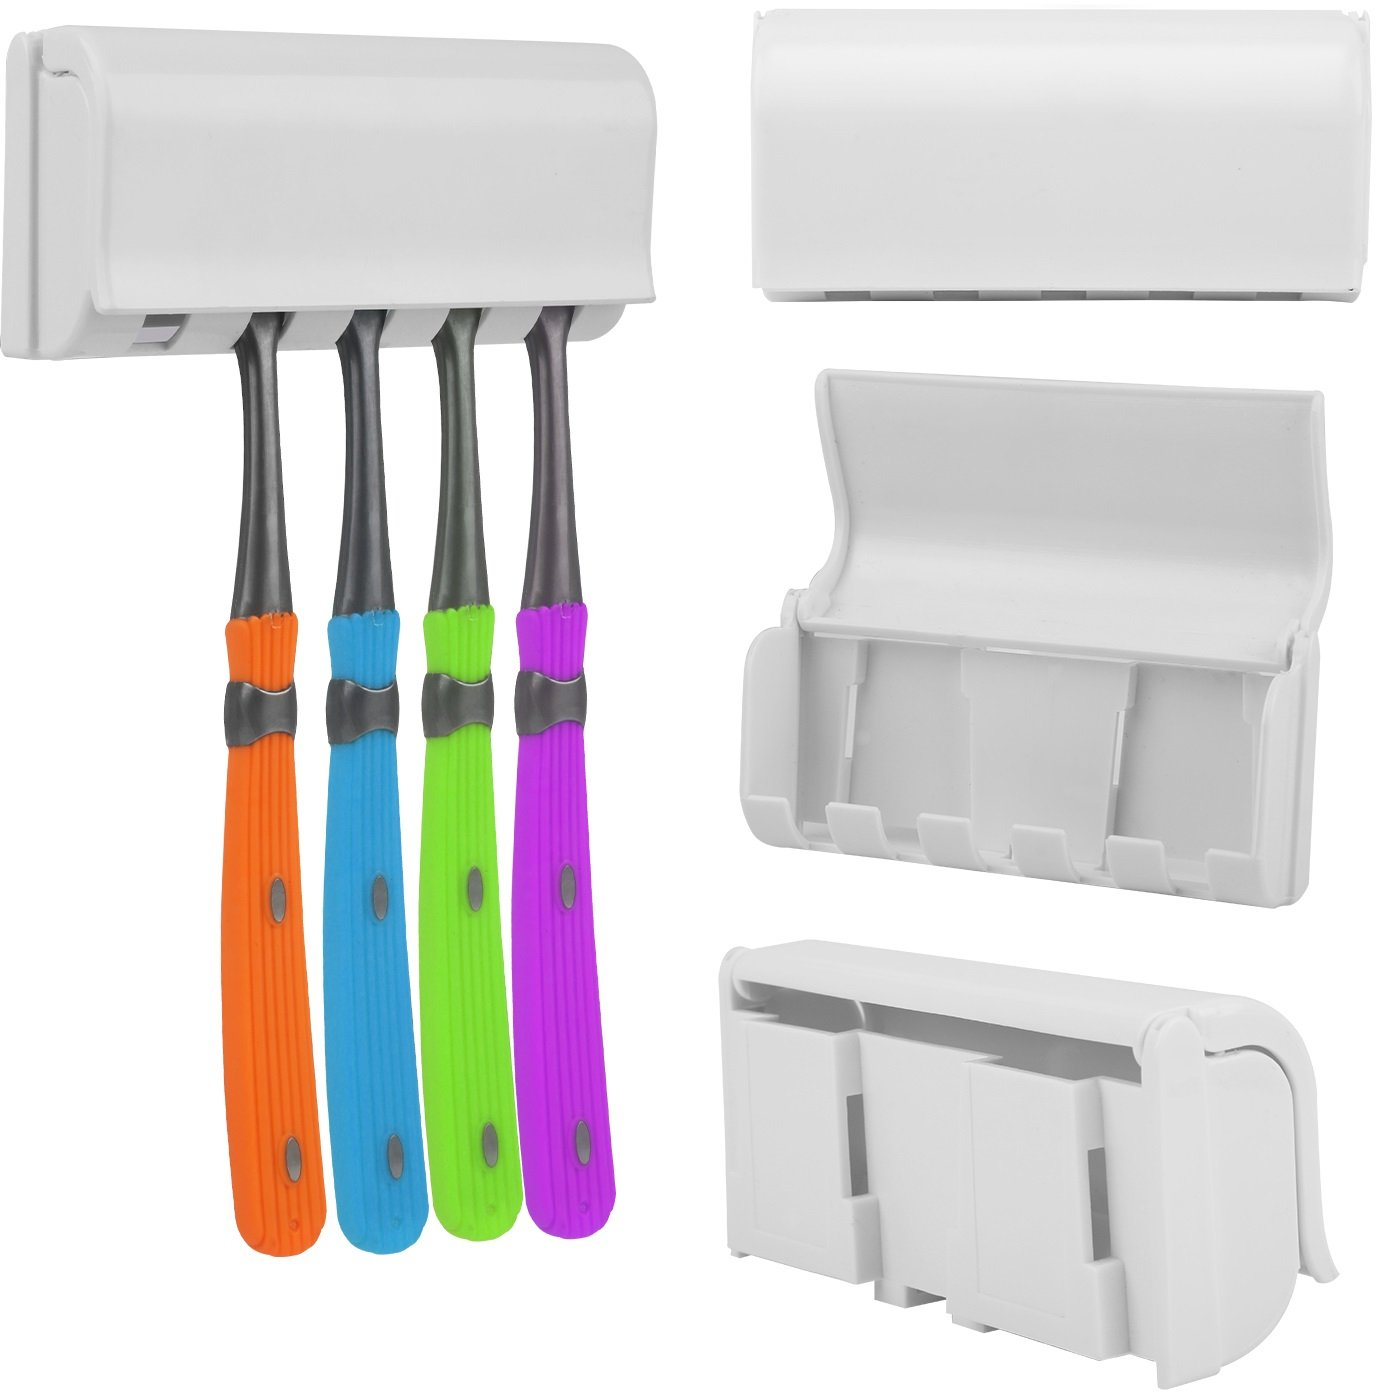 Holds 5 Brushes For Family Shower Bathroom Sink iMounTEK Hands Free Automatic Toothpaste Dispenser /& Toothbrush Holder Set W// Sticky Suction Pad Wall Mount Easy Installation One Touch Squeezer